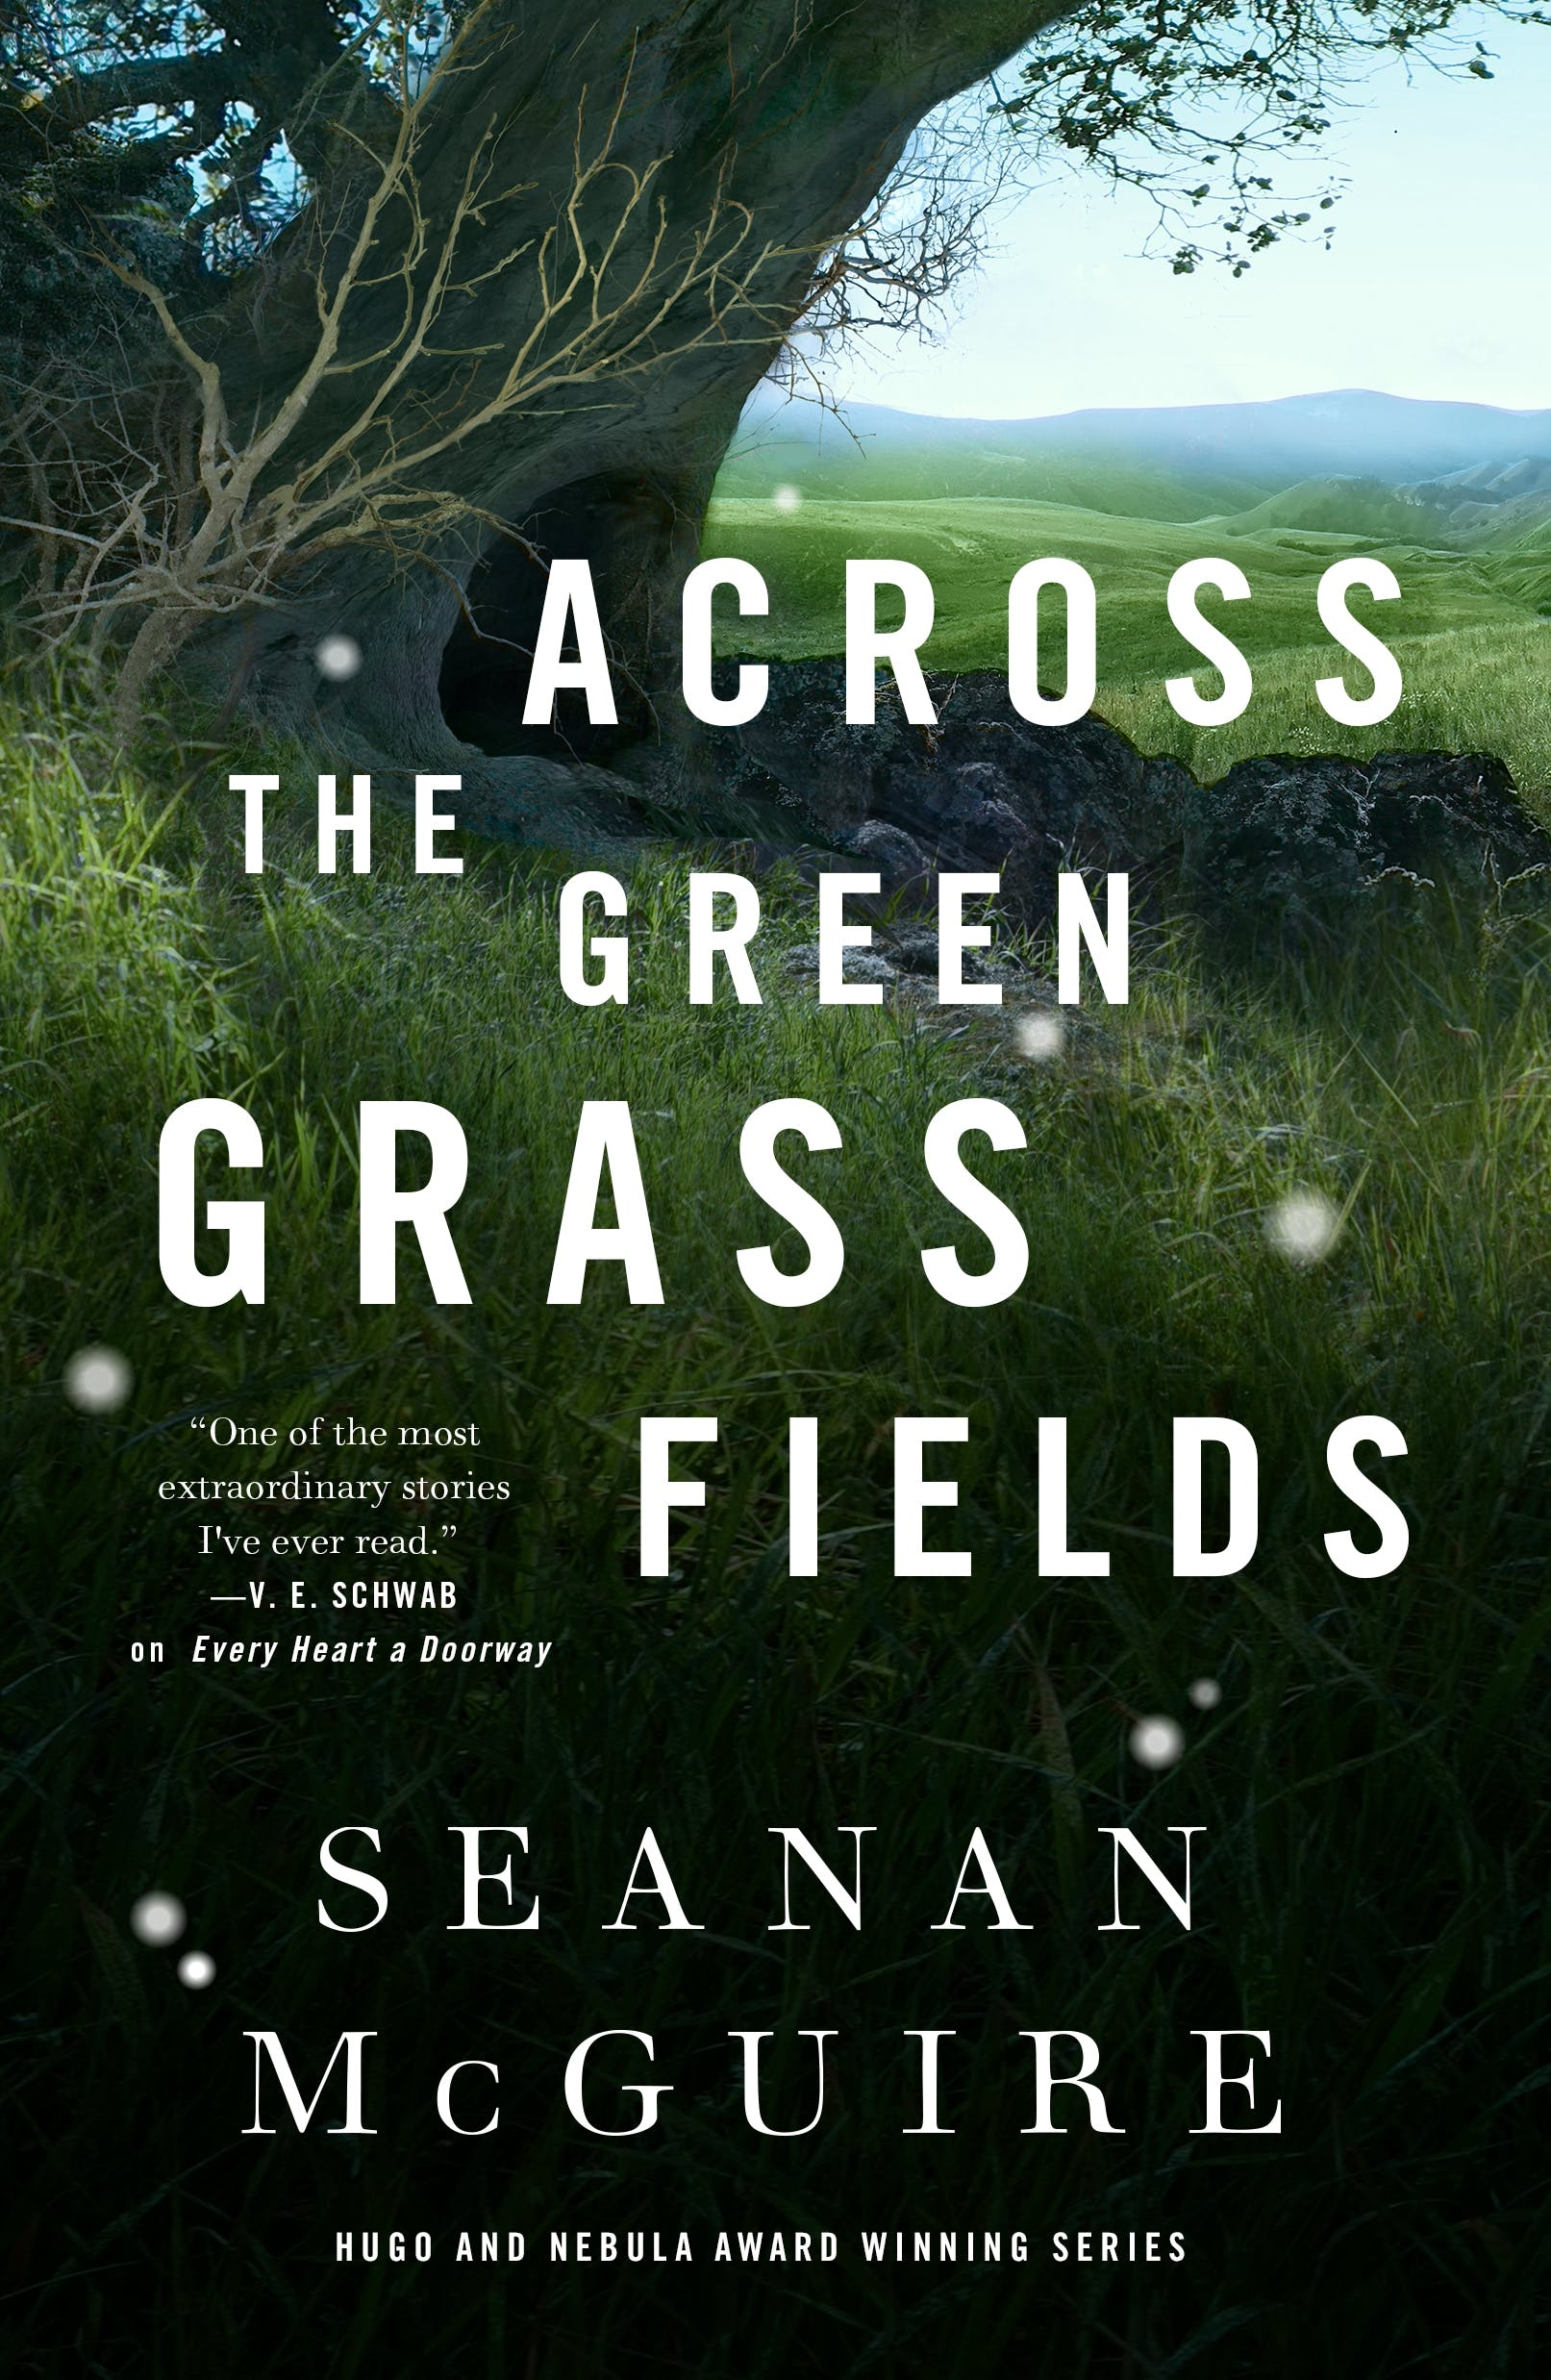 Image of Across the Green Grass Fields